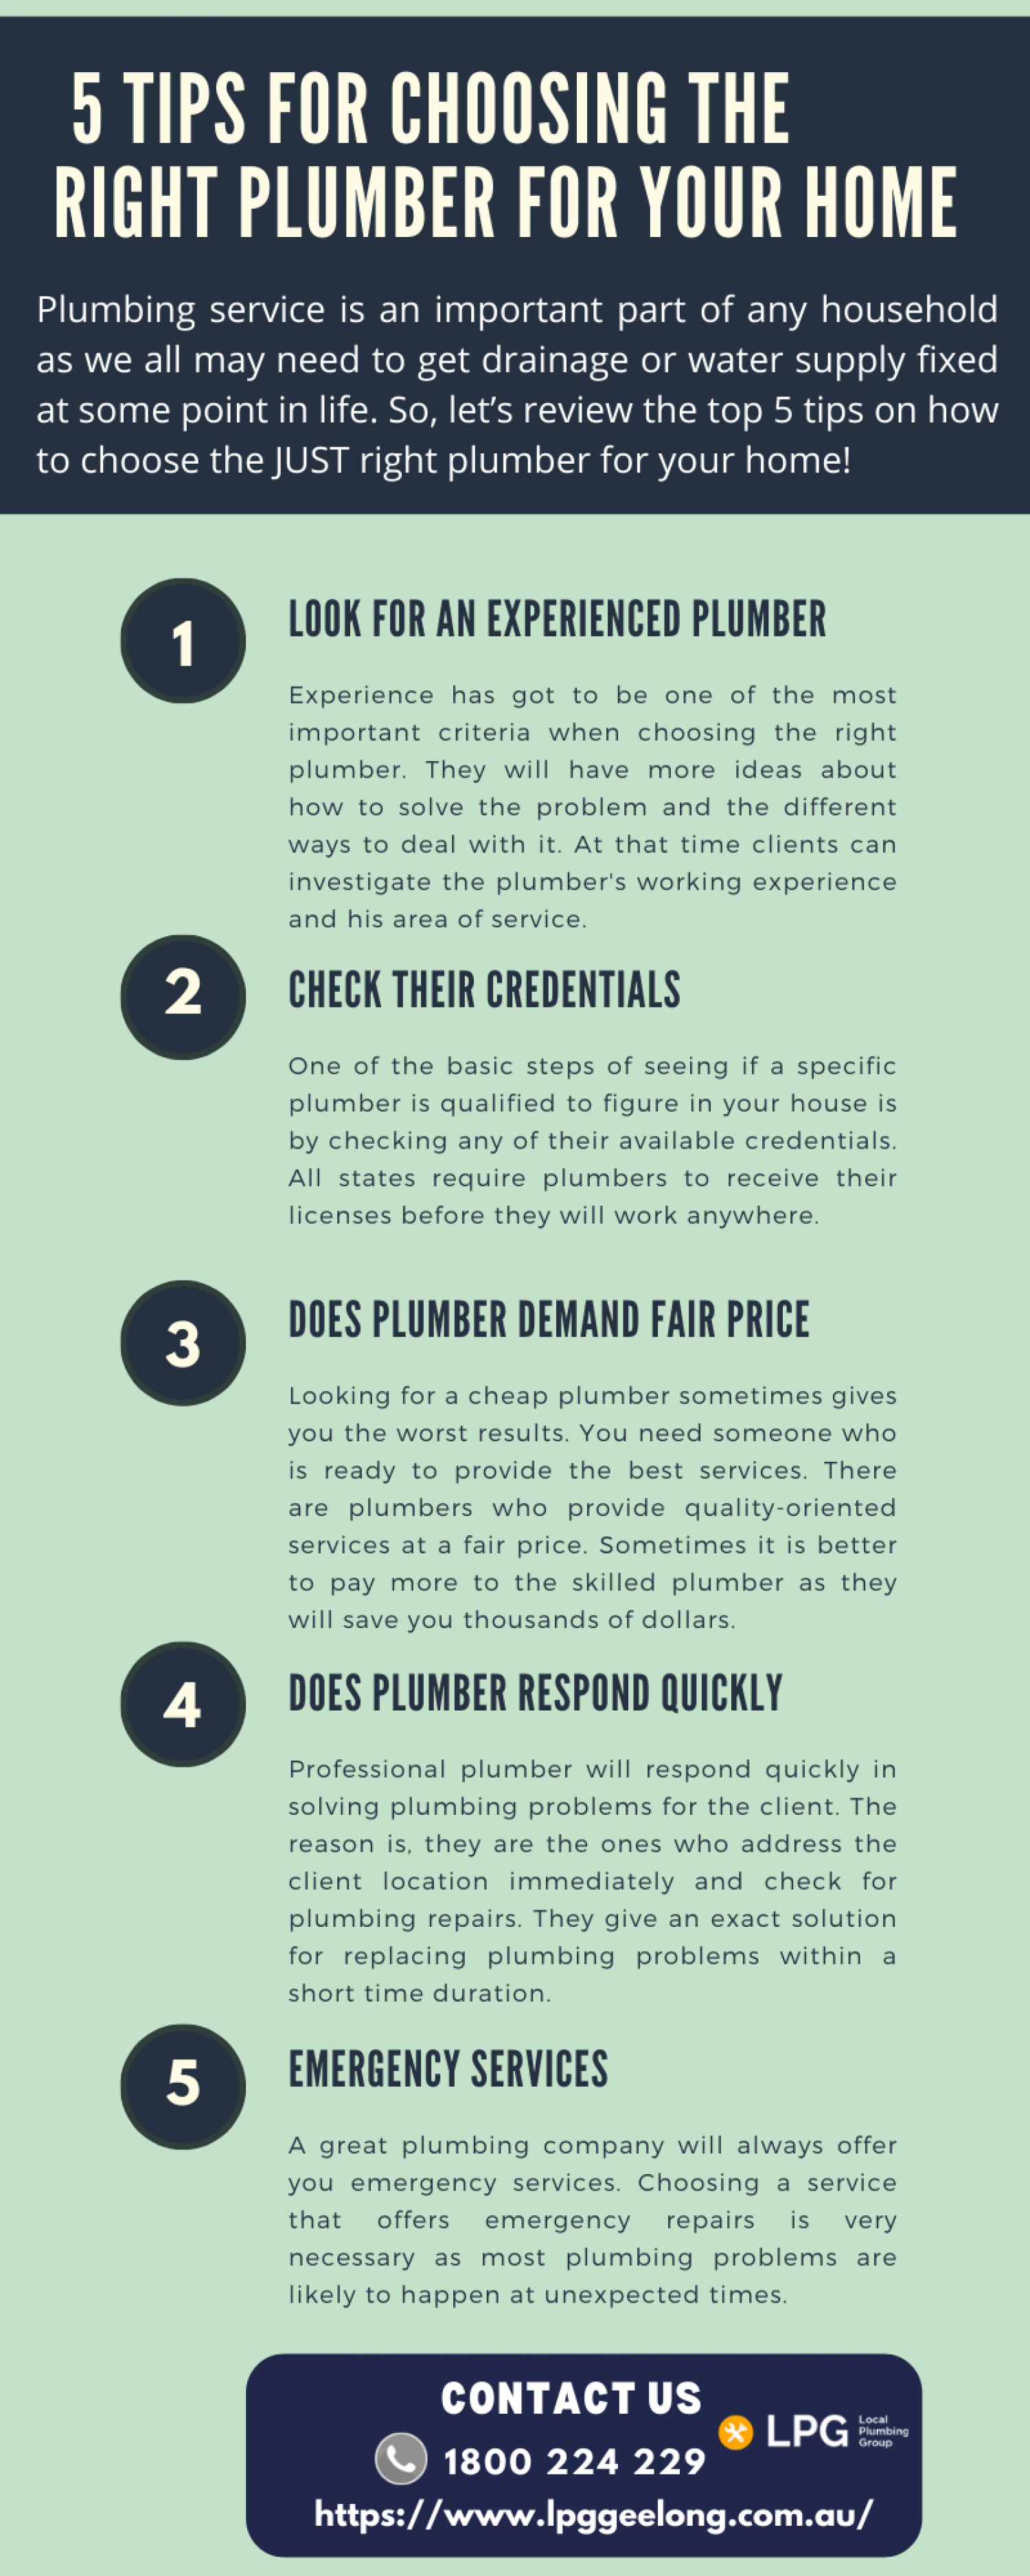 5 Tips For Choosing The Right Plumber For Your Home Infographic